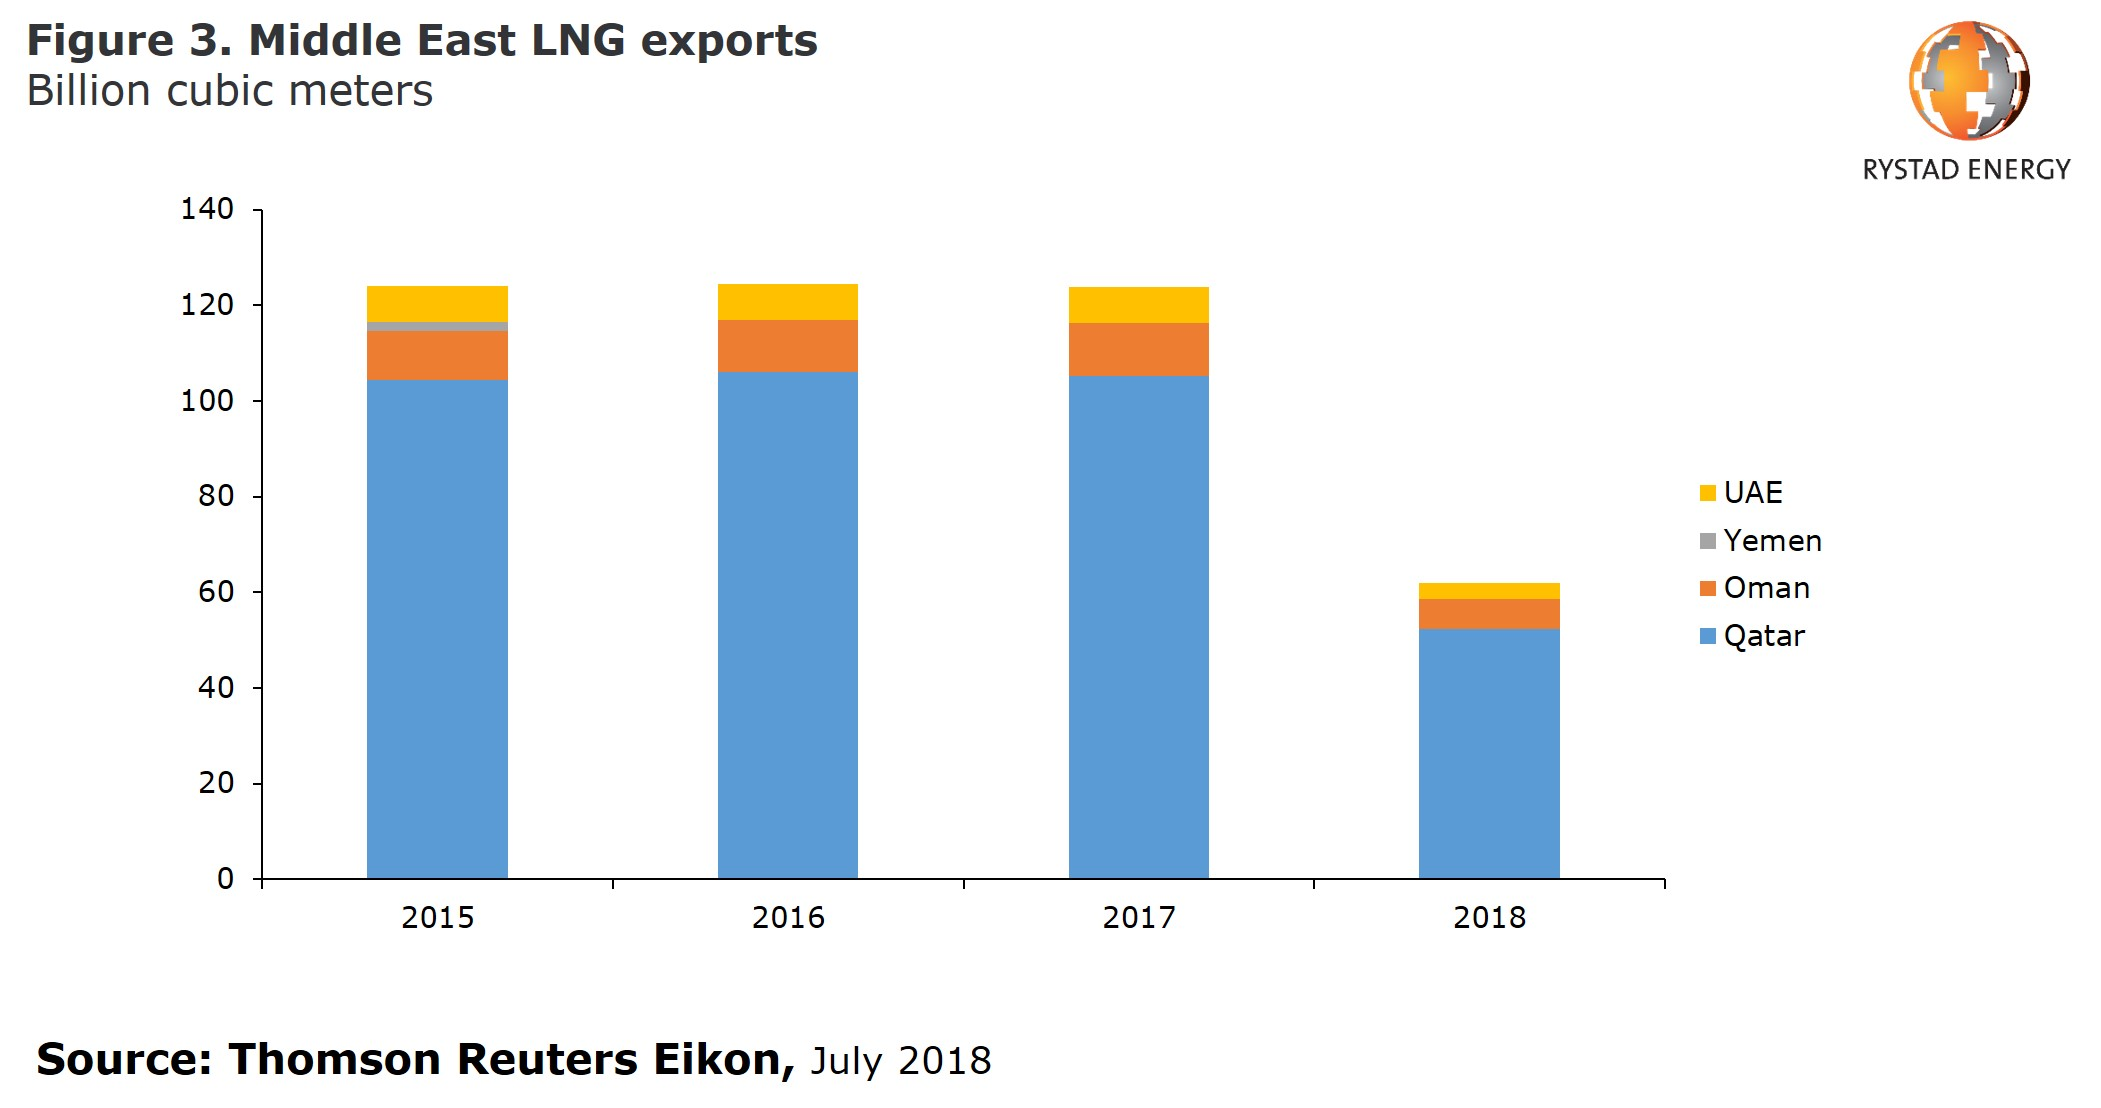 Figure 3: A bar chart showing the Middle East LNG exports in Billion cubic meters from 2015 to 2018, Source: Thomson Reuers Eikon, July 2018